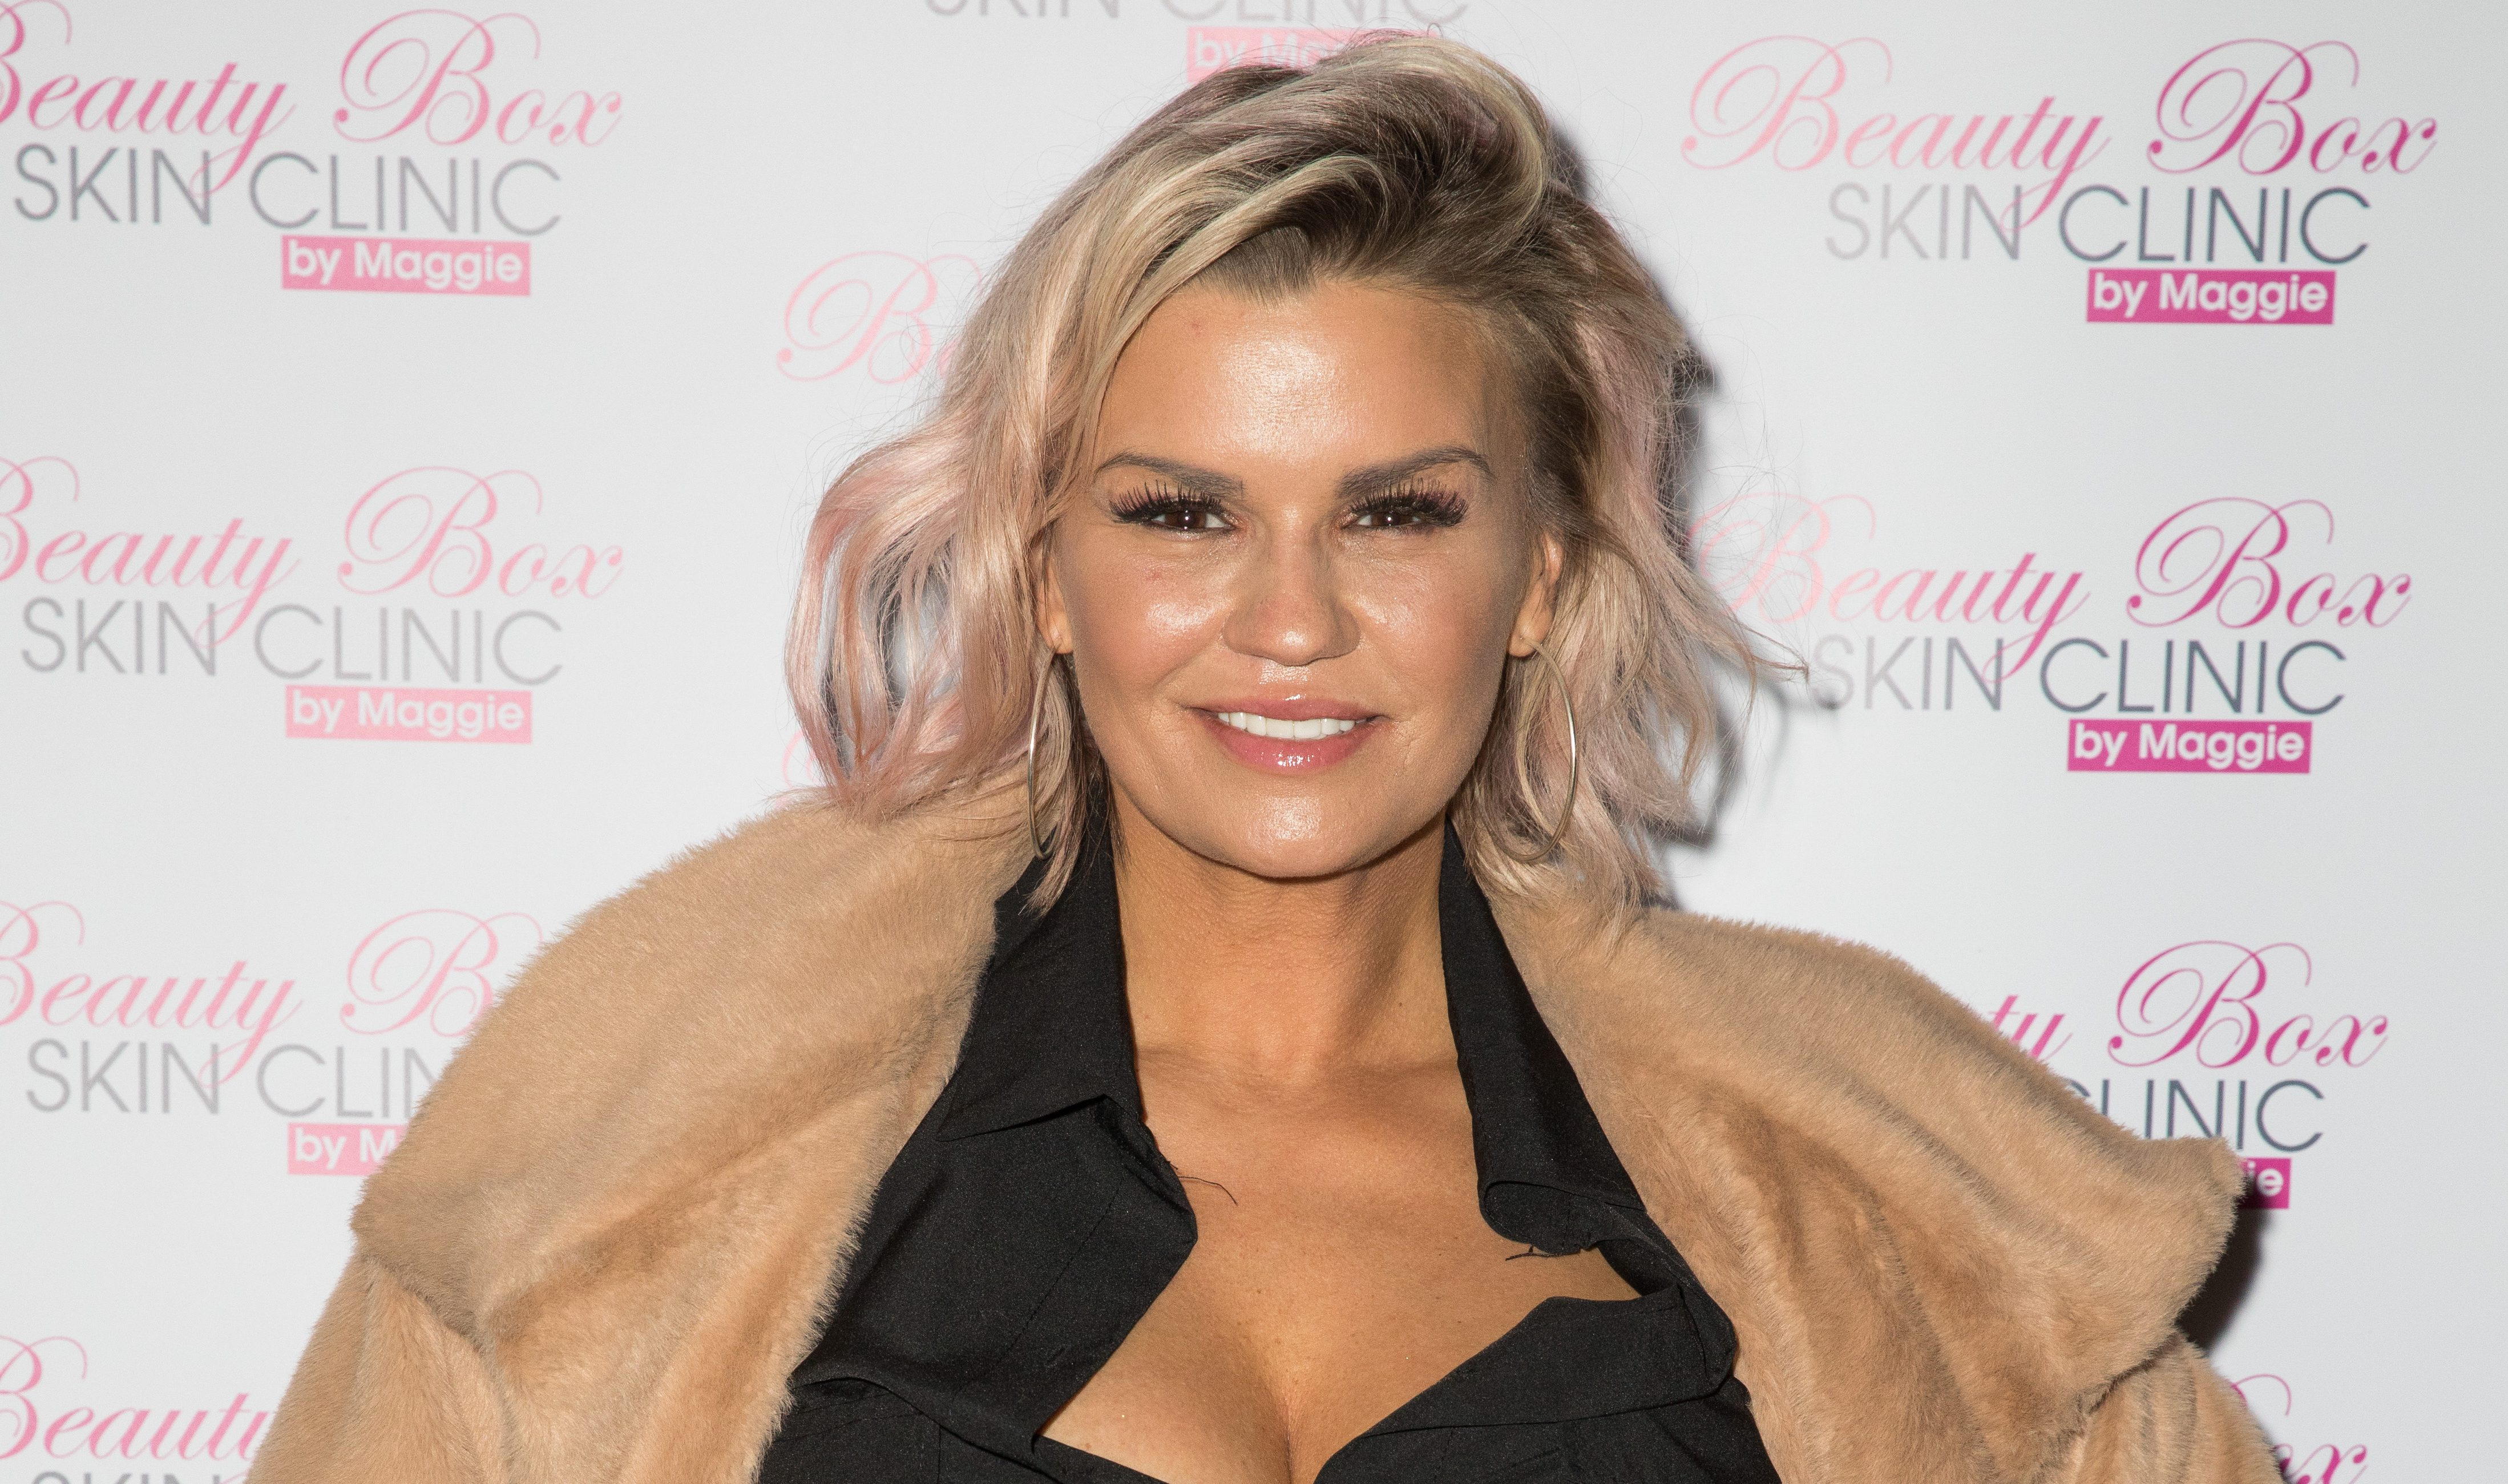 Kerry Katona is hooked up to a drip as she spends the night in hospital for mystery illness